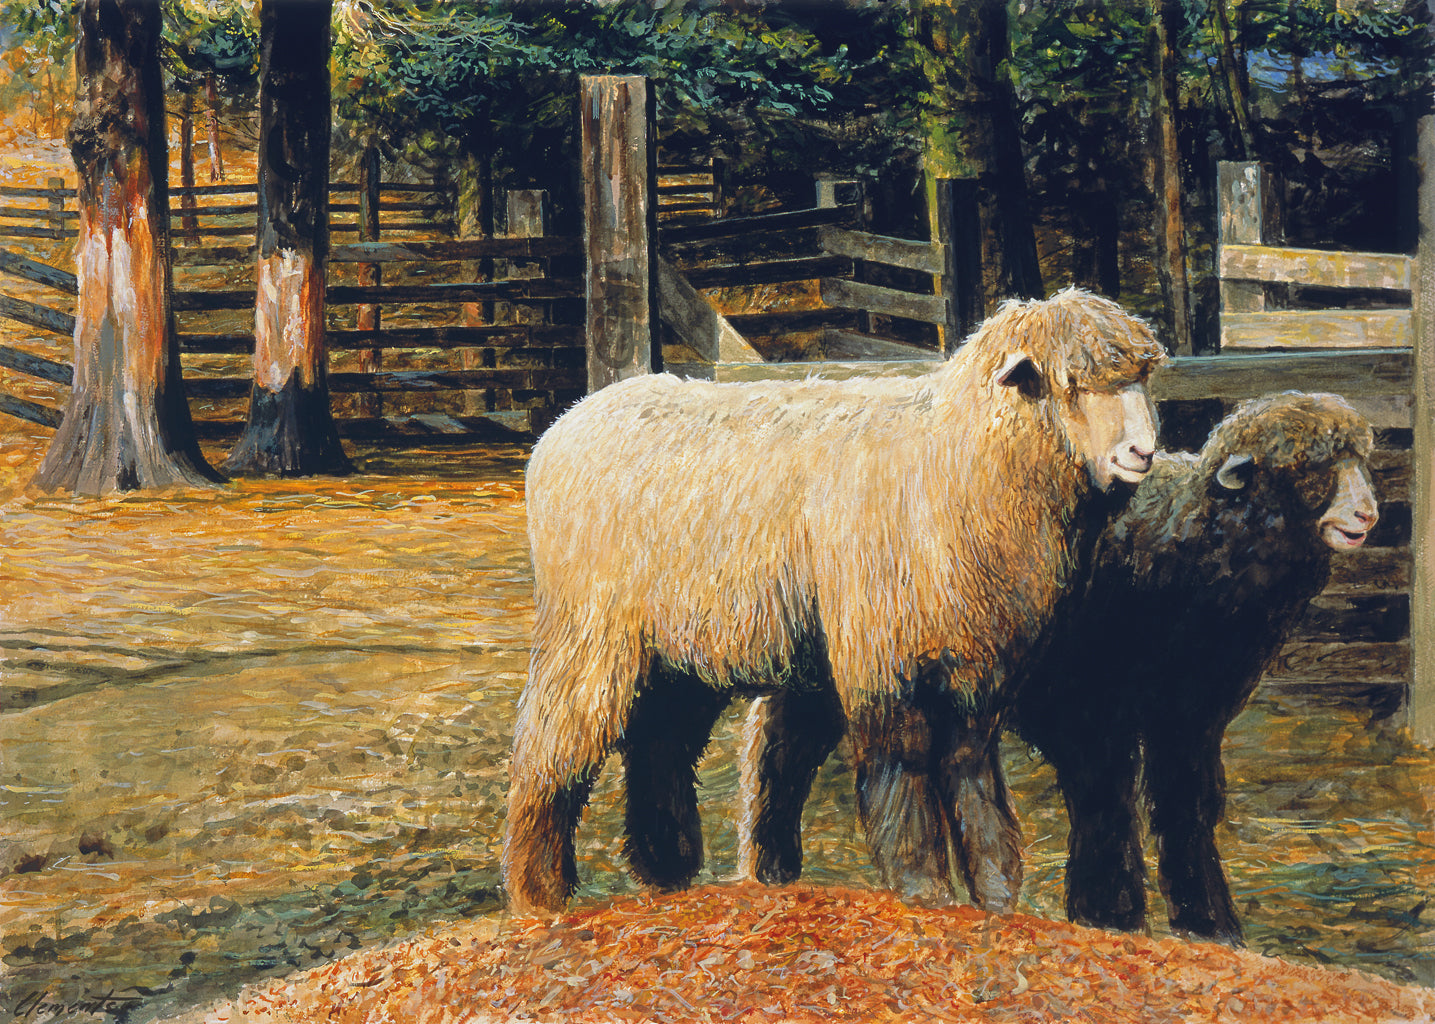 Two Ewe Sheep in Rainy Barnyard Painting Giclée Print